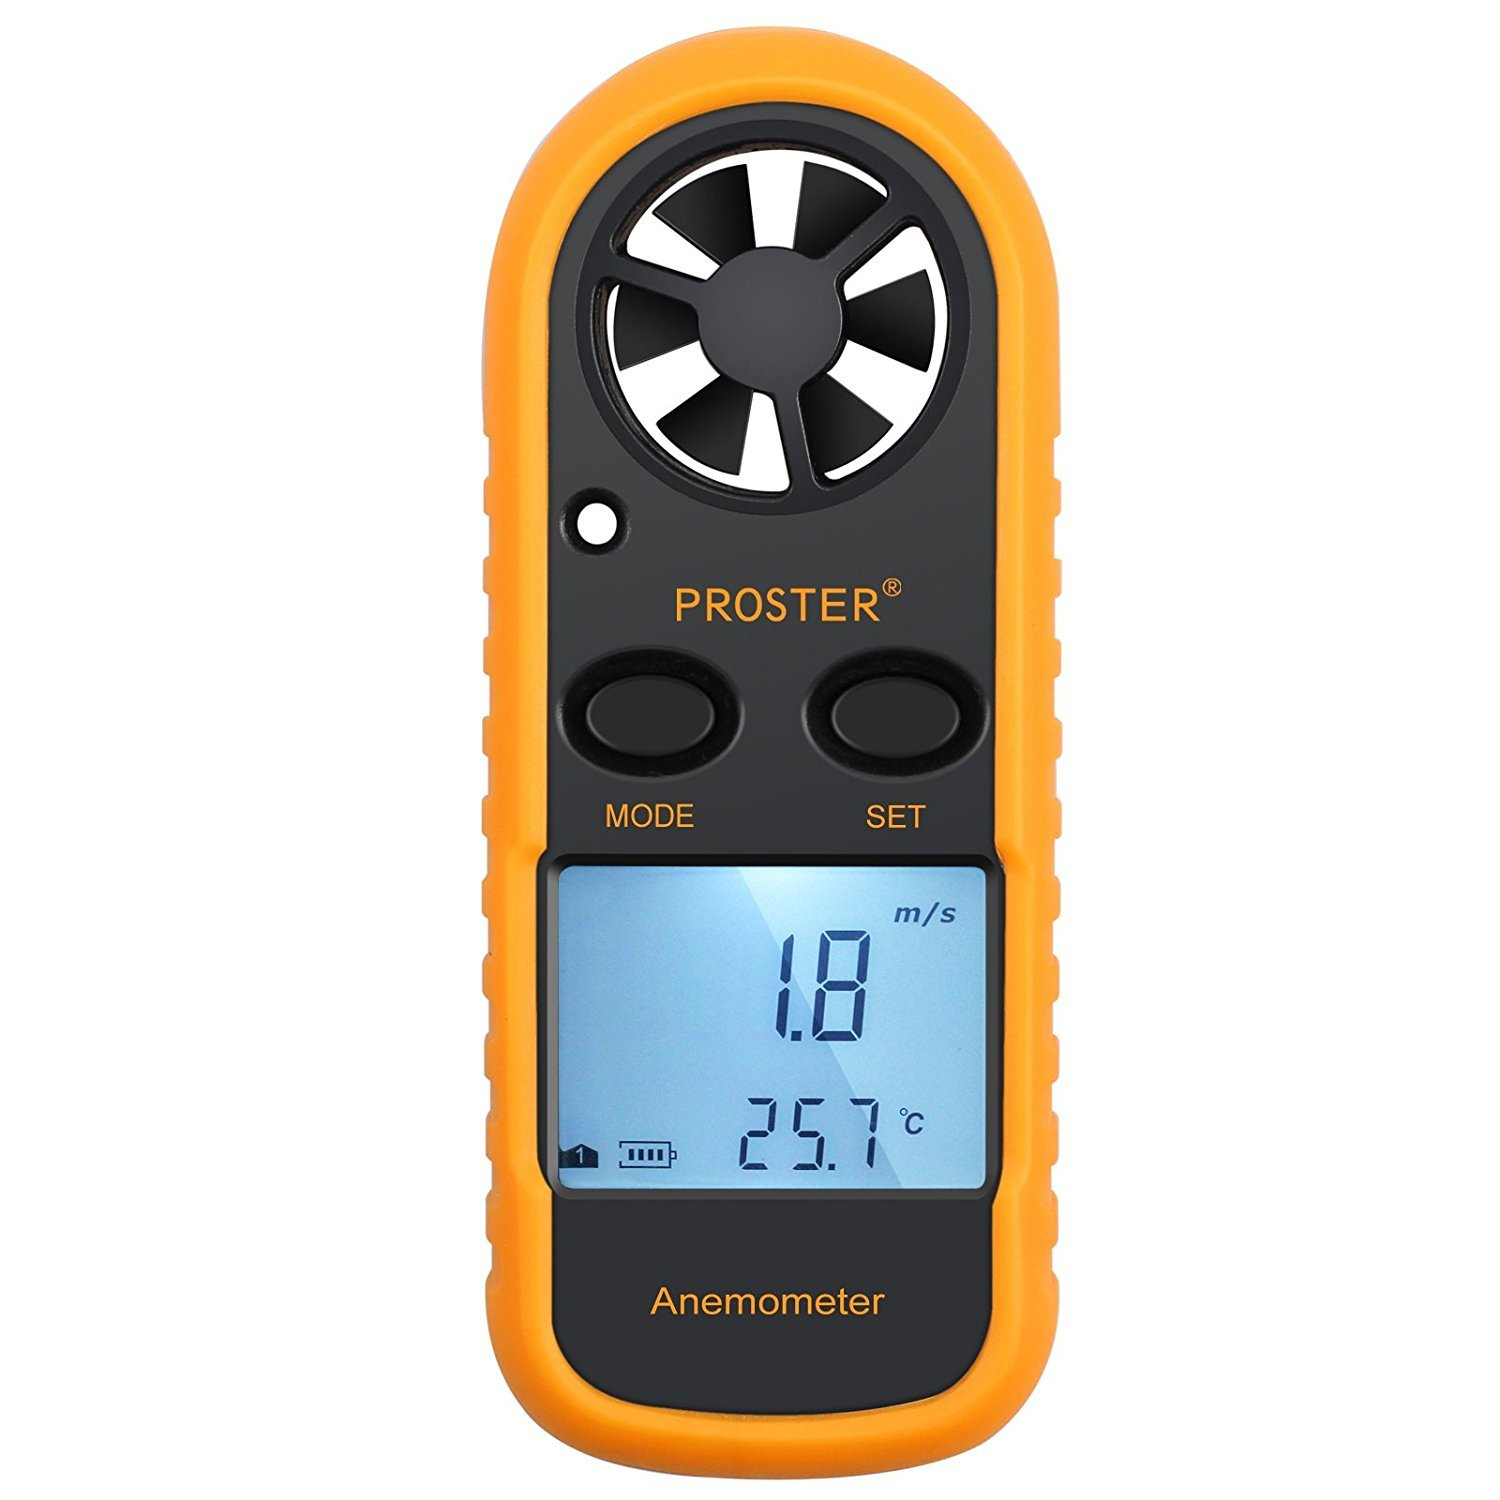 Proster Anemometer Digital LCD Wind Speed Meter Gauge Air Flow Velocity Measurement Thermometer with Backlight for Windsurfing Kite Flying Sailing Surfing Fishing